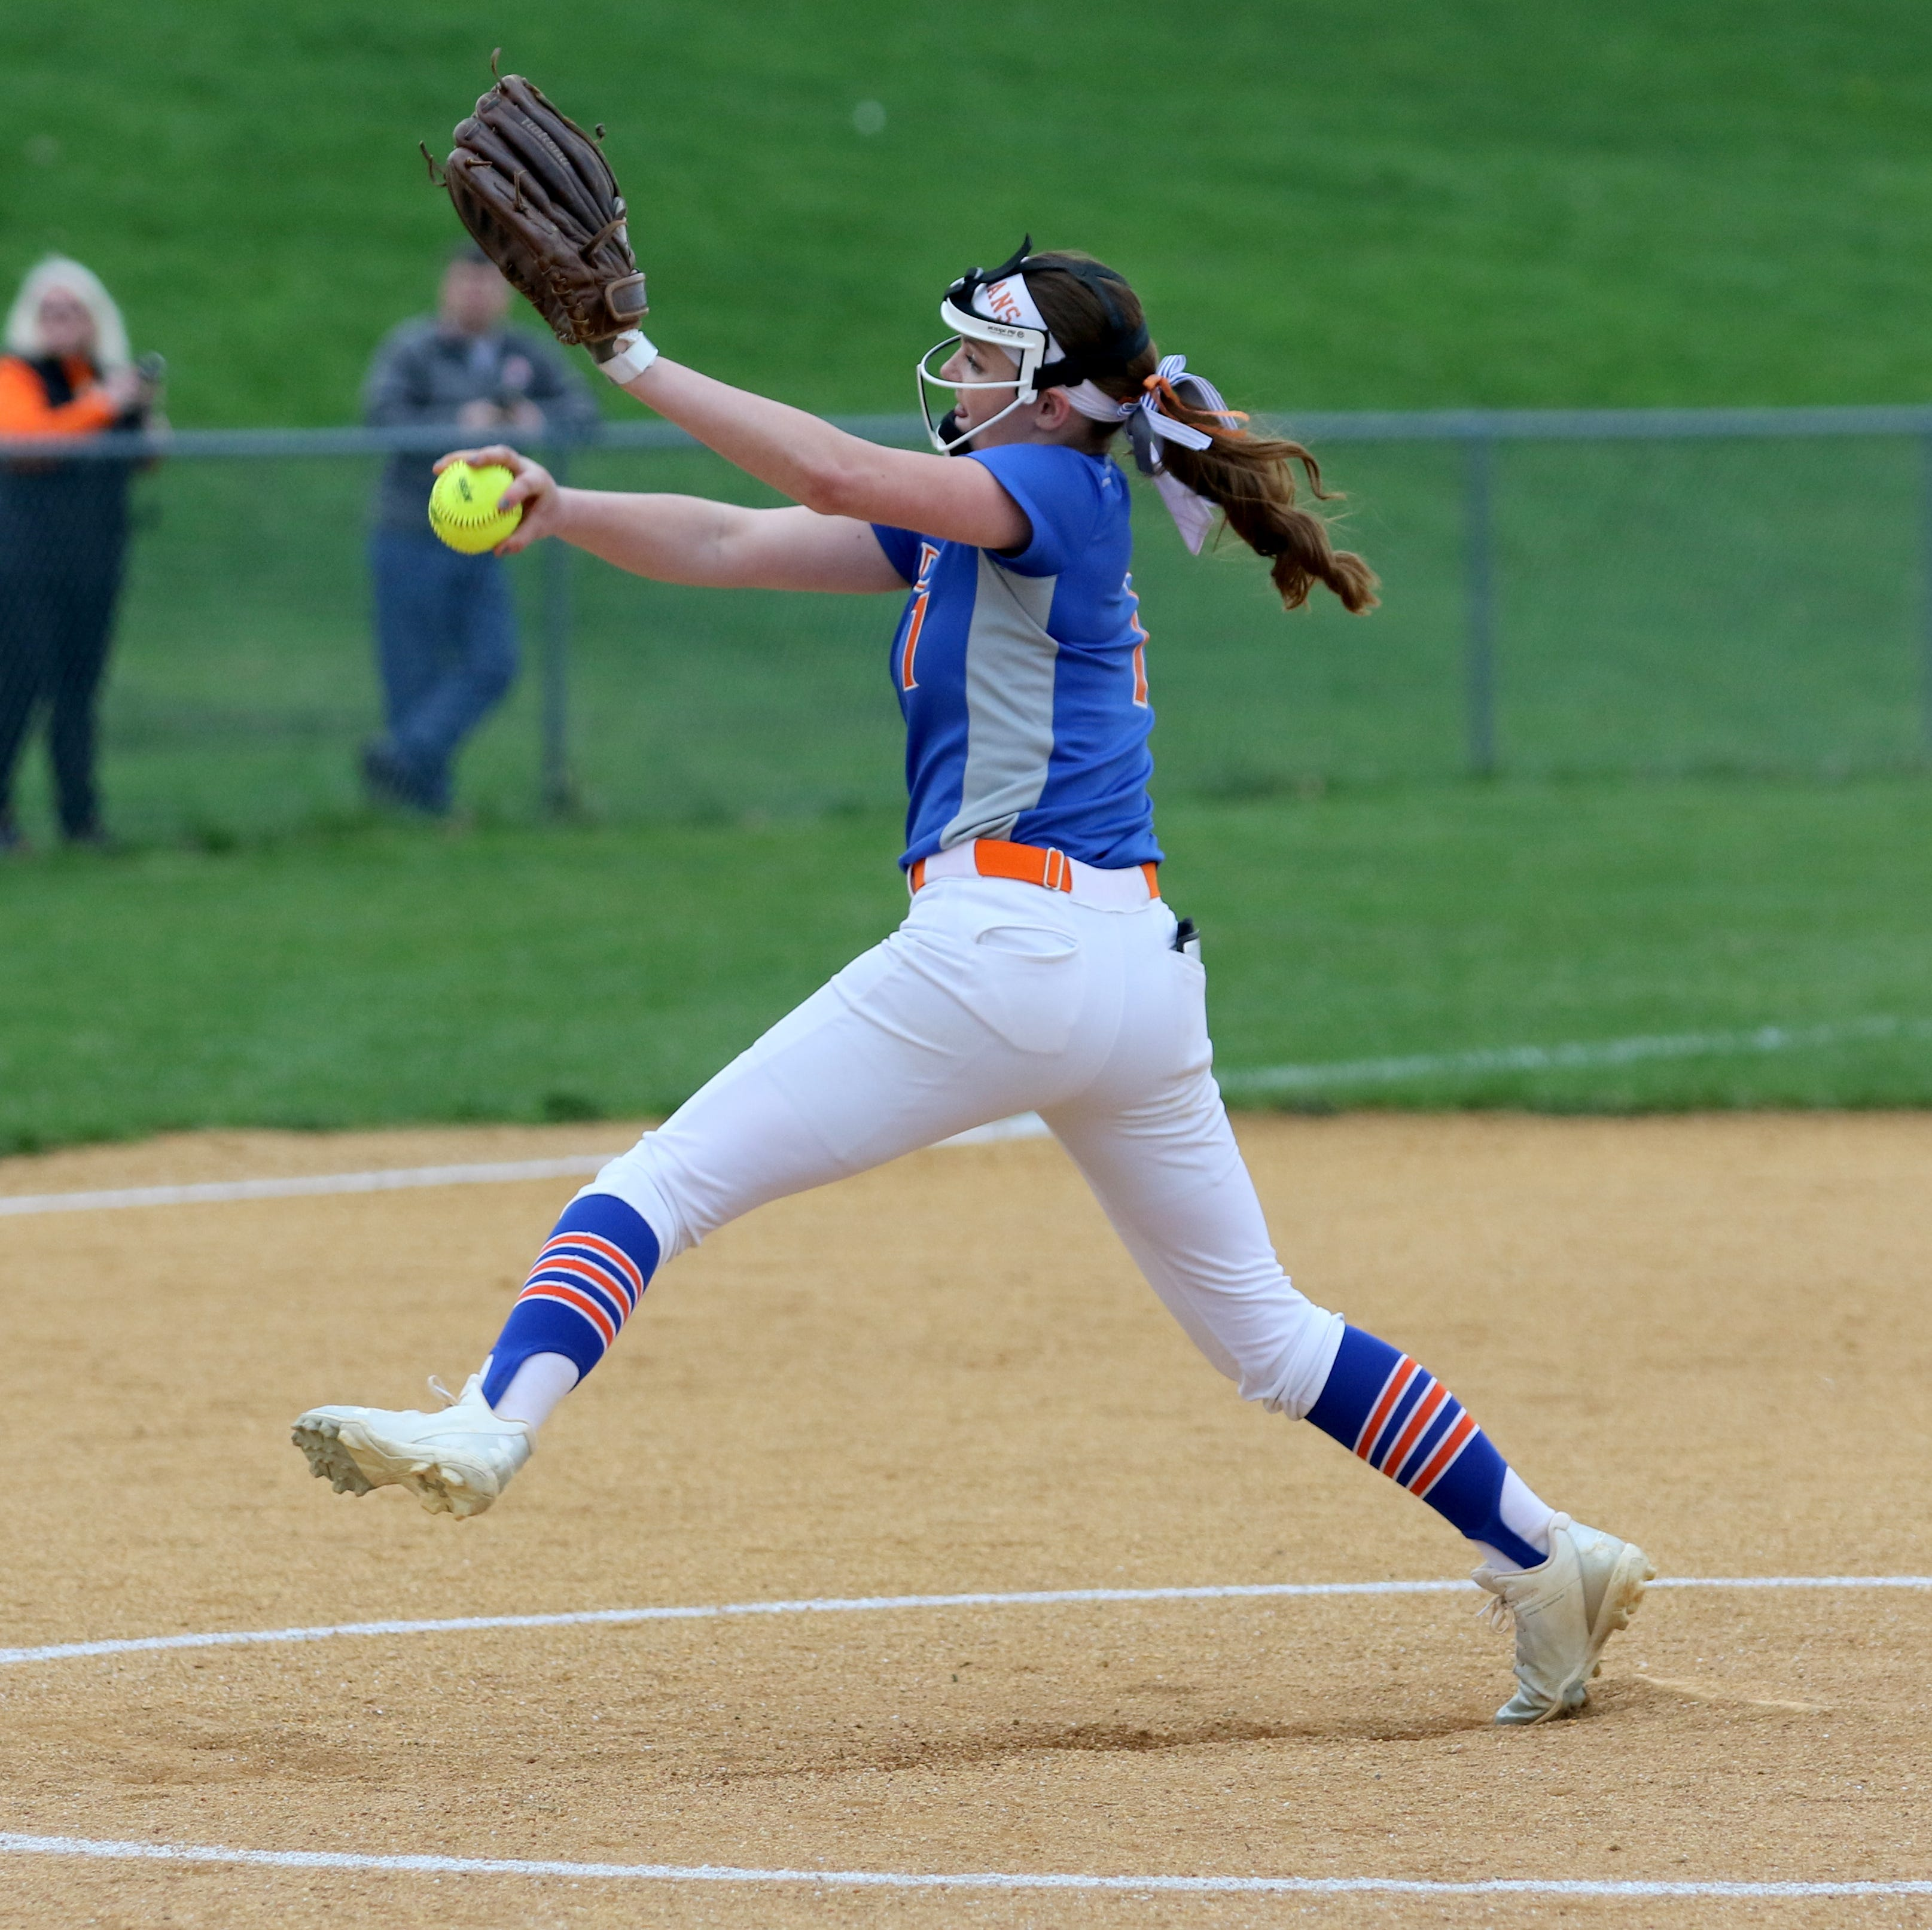 Edison, Waverly to square off for IAC softball title after semifinal wins